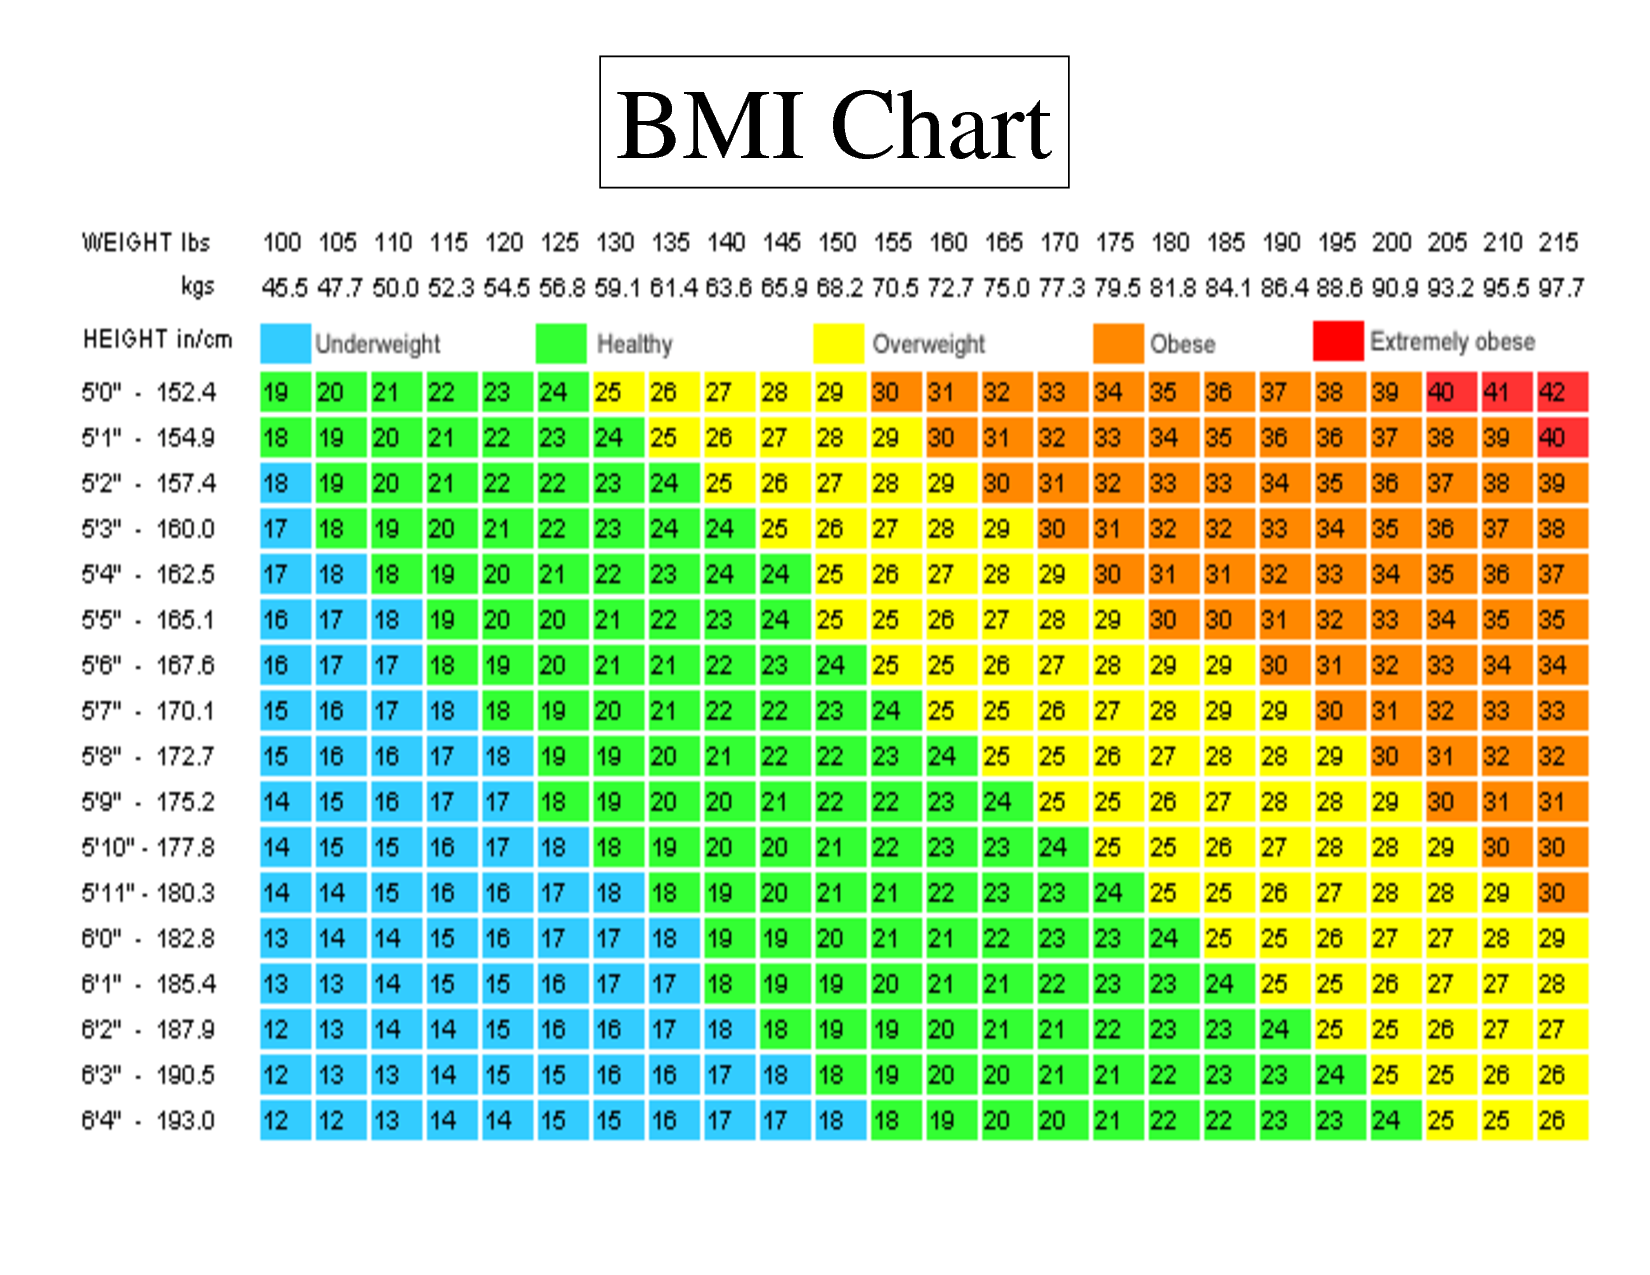 Bmi chart diabetes forum the global diabetes community view attachment 20785 i wanted to make this bmi chart nvjuhfo Image collections